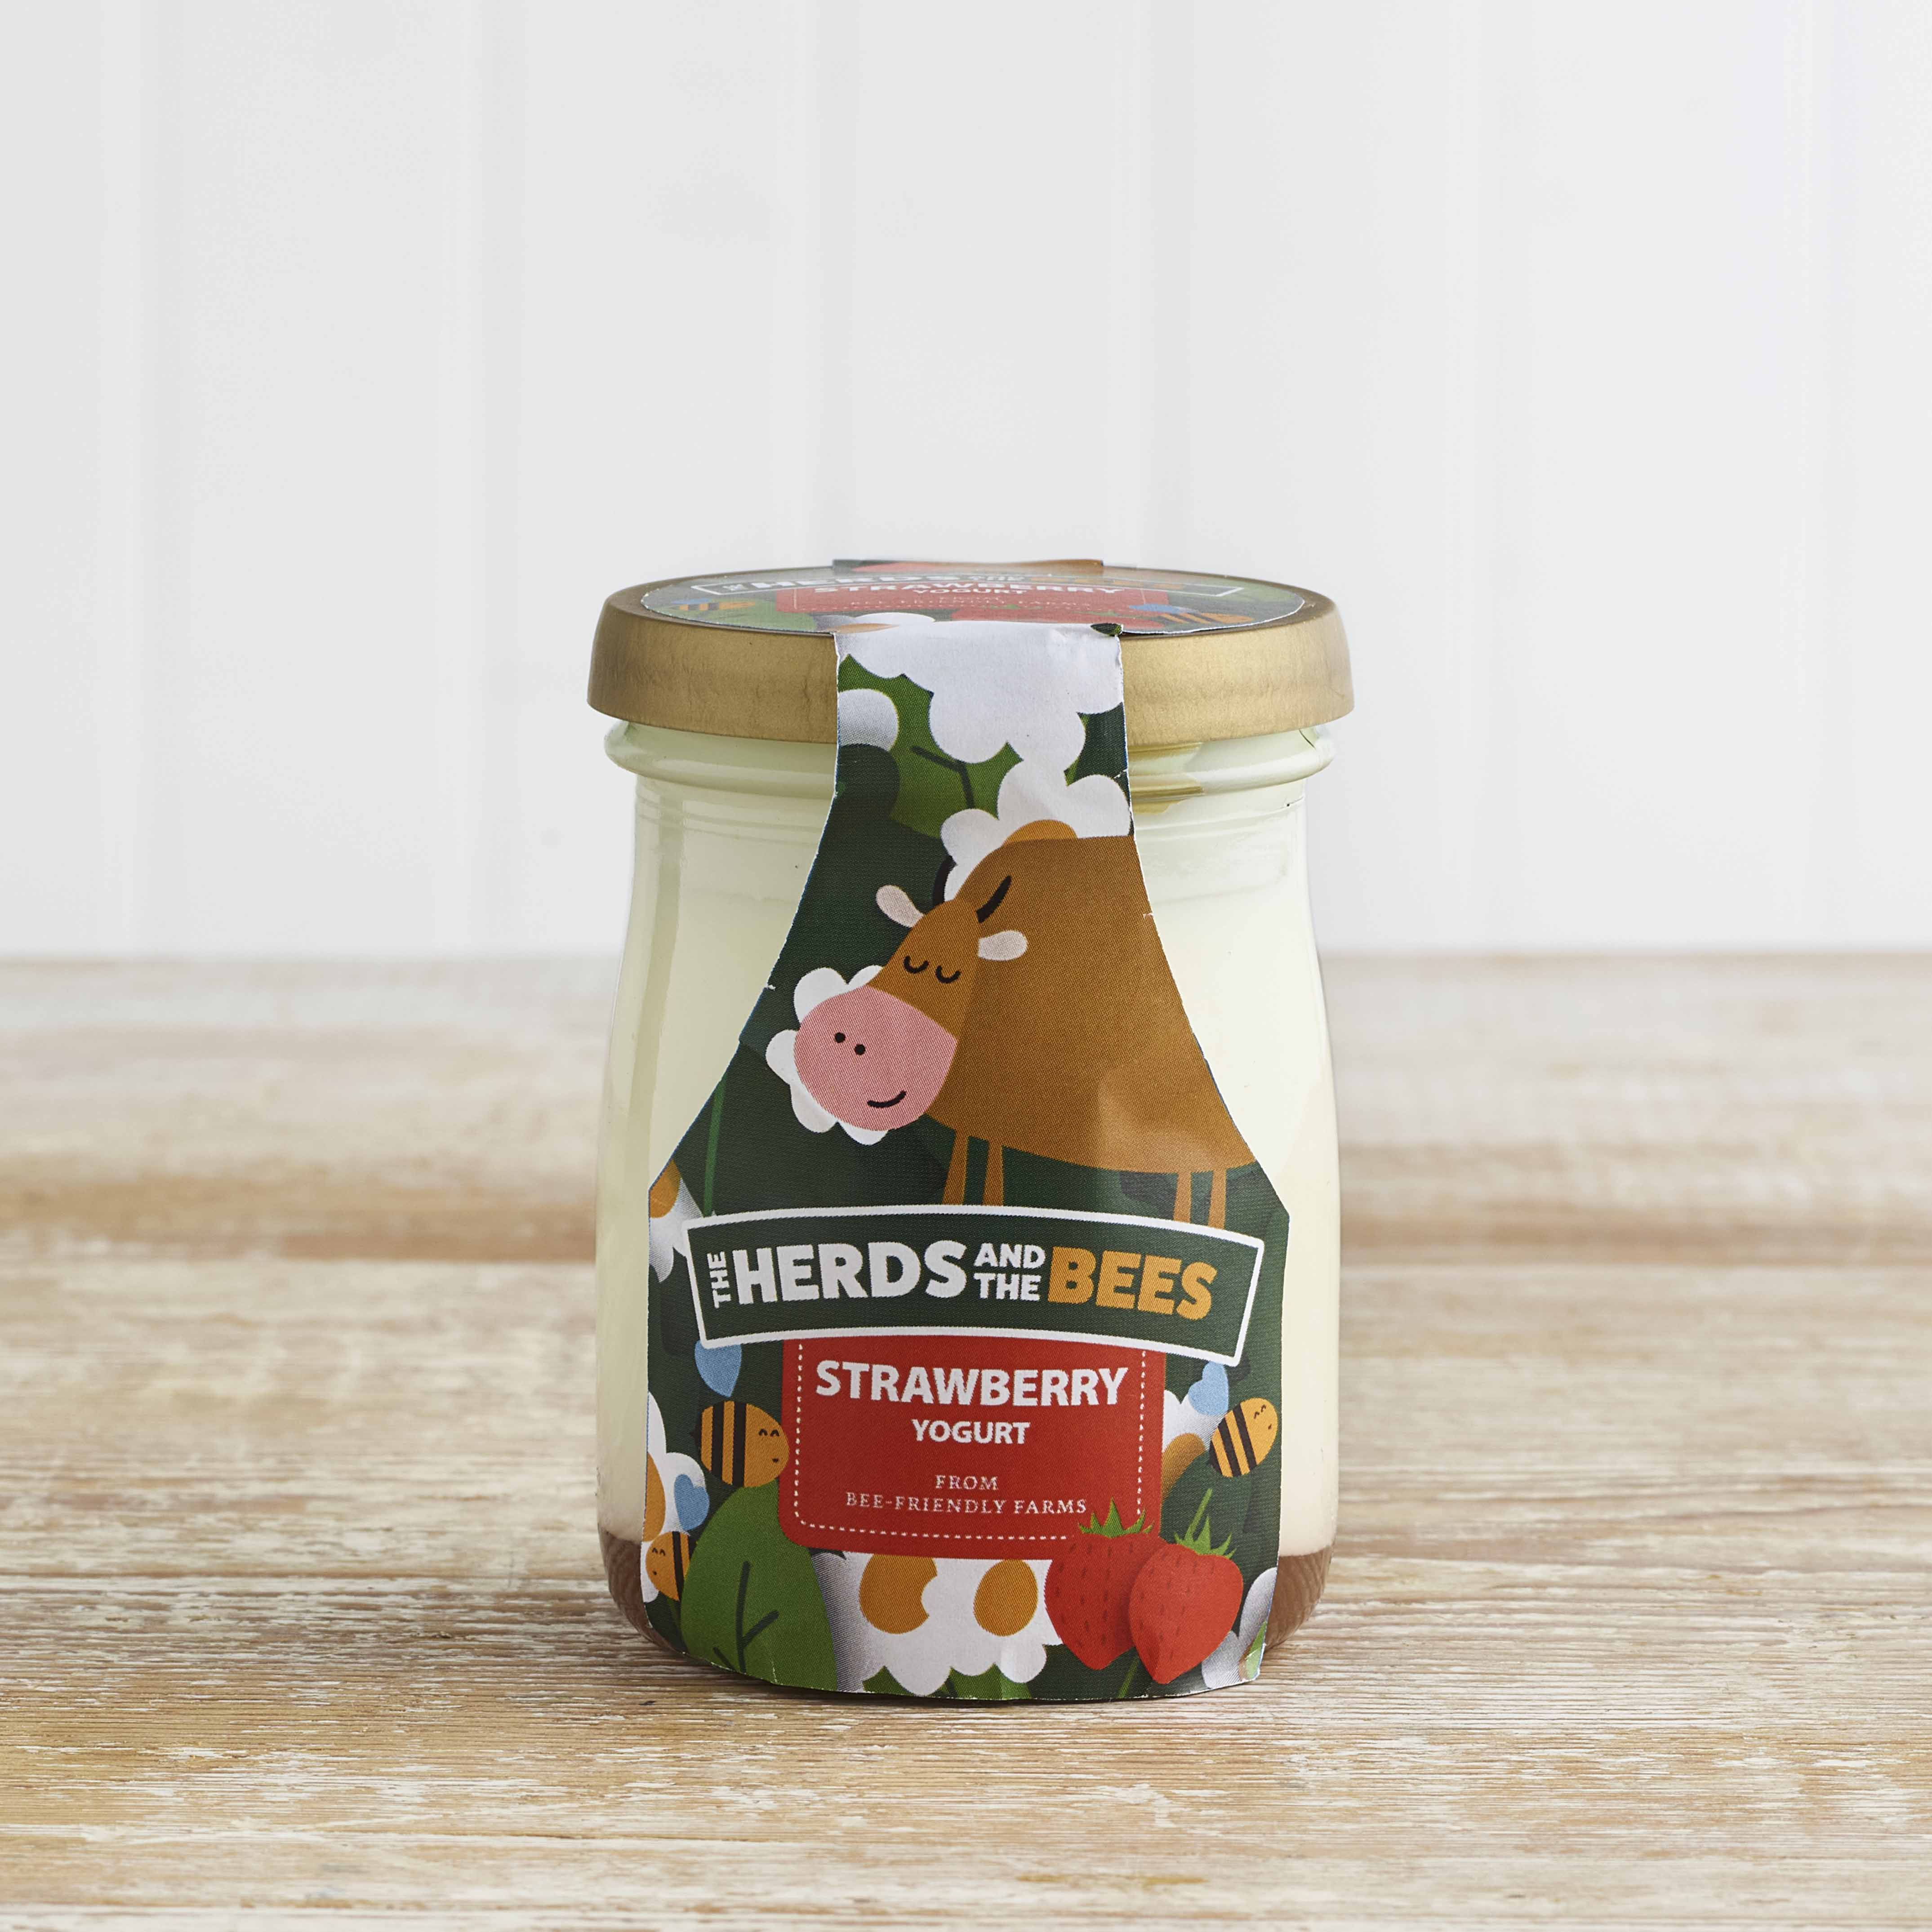 The Herds and the Bees Strawberry Layered Yoghurt in Glass, 125g